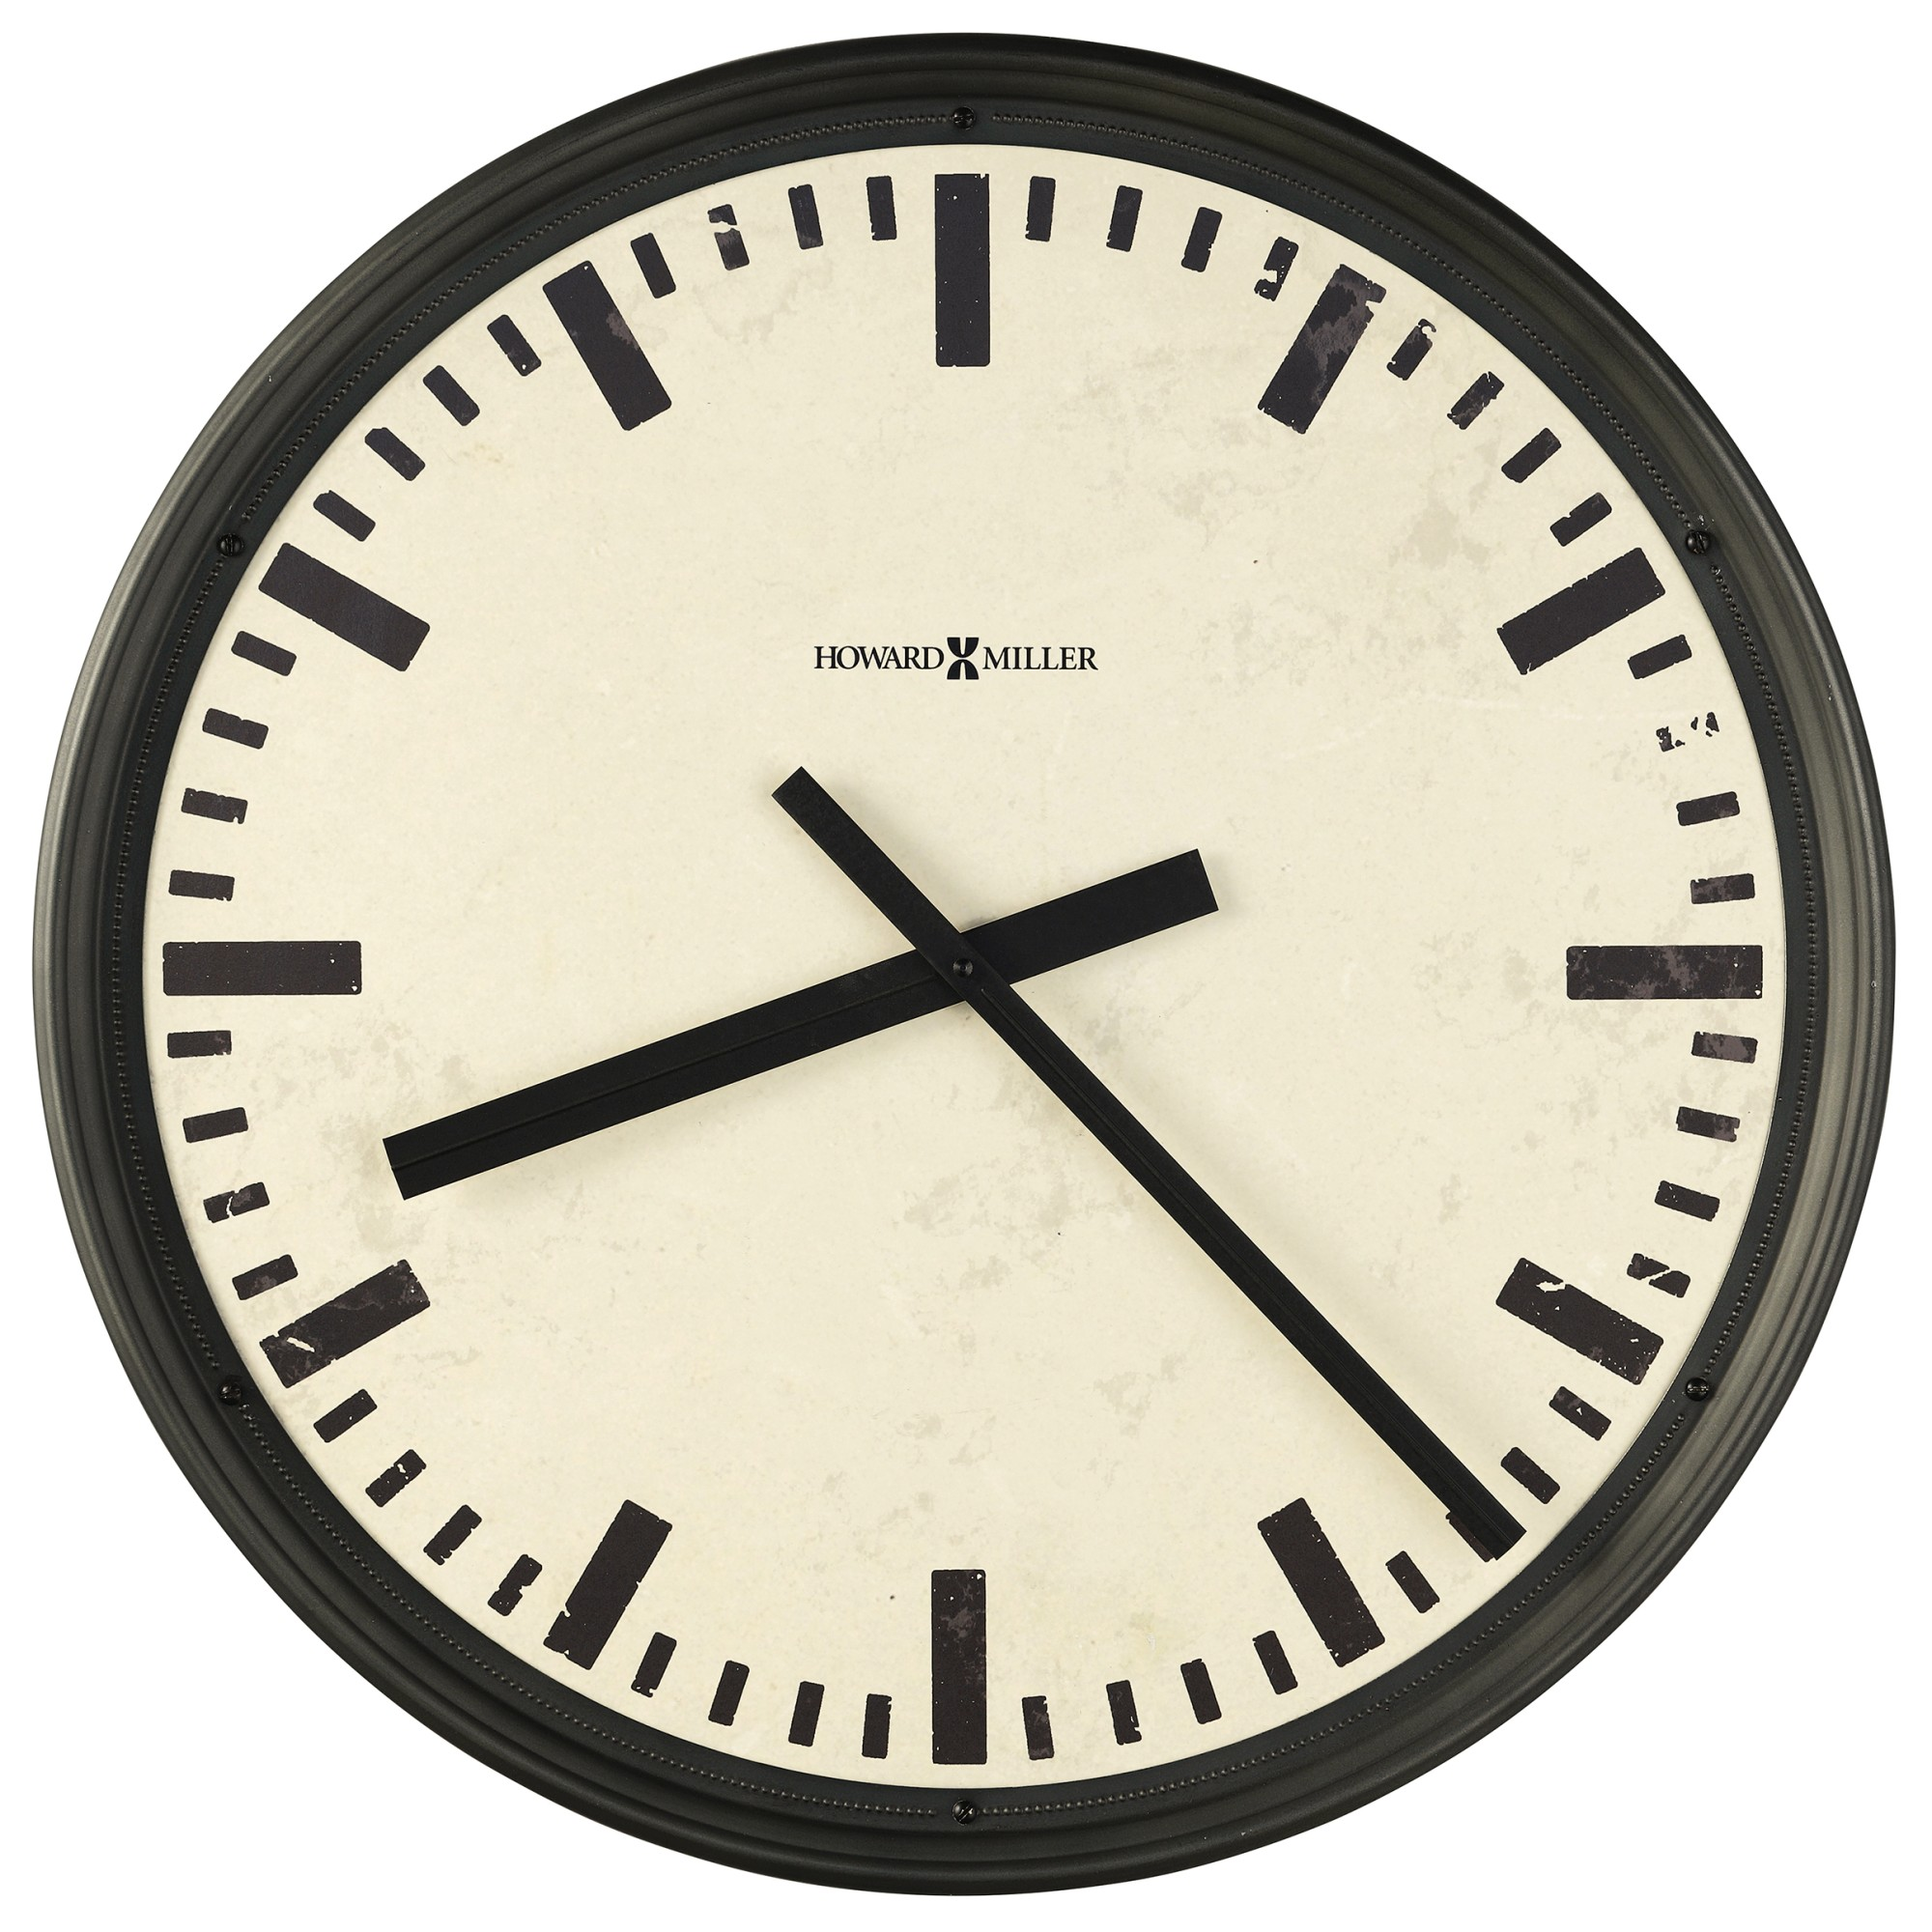 Image for 625-730 Conklin Gallery Wall Clock from Howard Miller Official Website